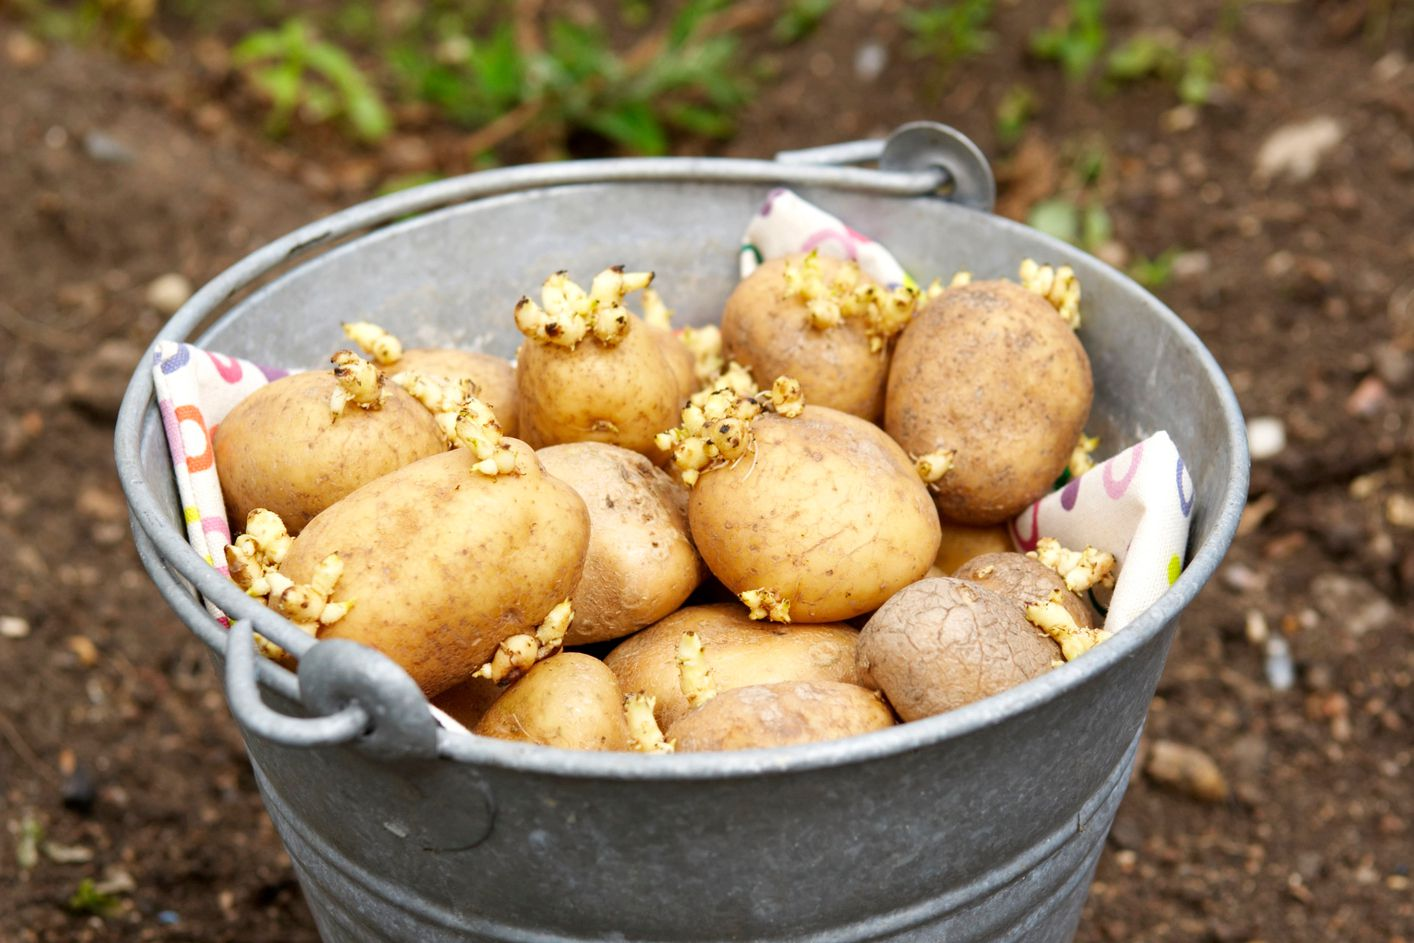 They Eat Safe Sprouted Are Potatoes